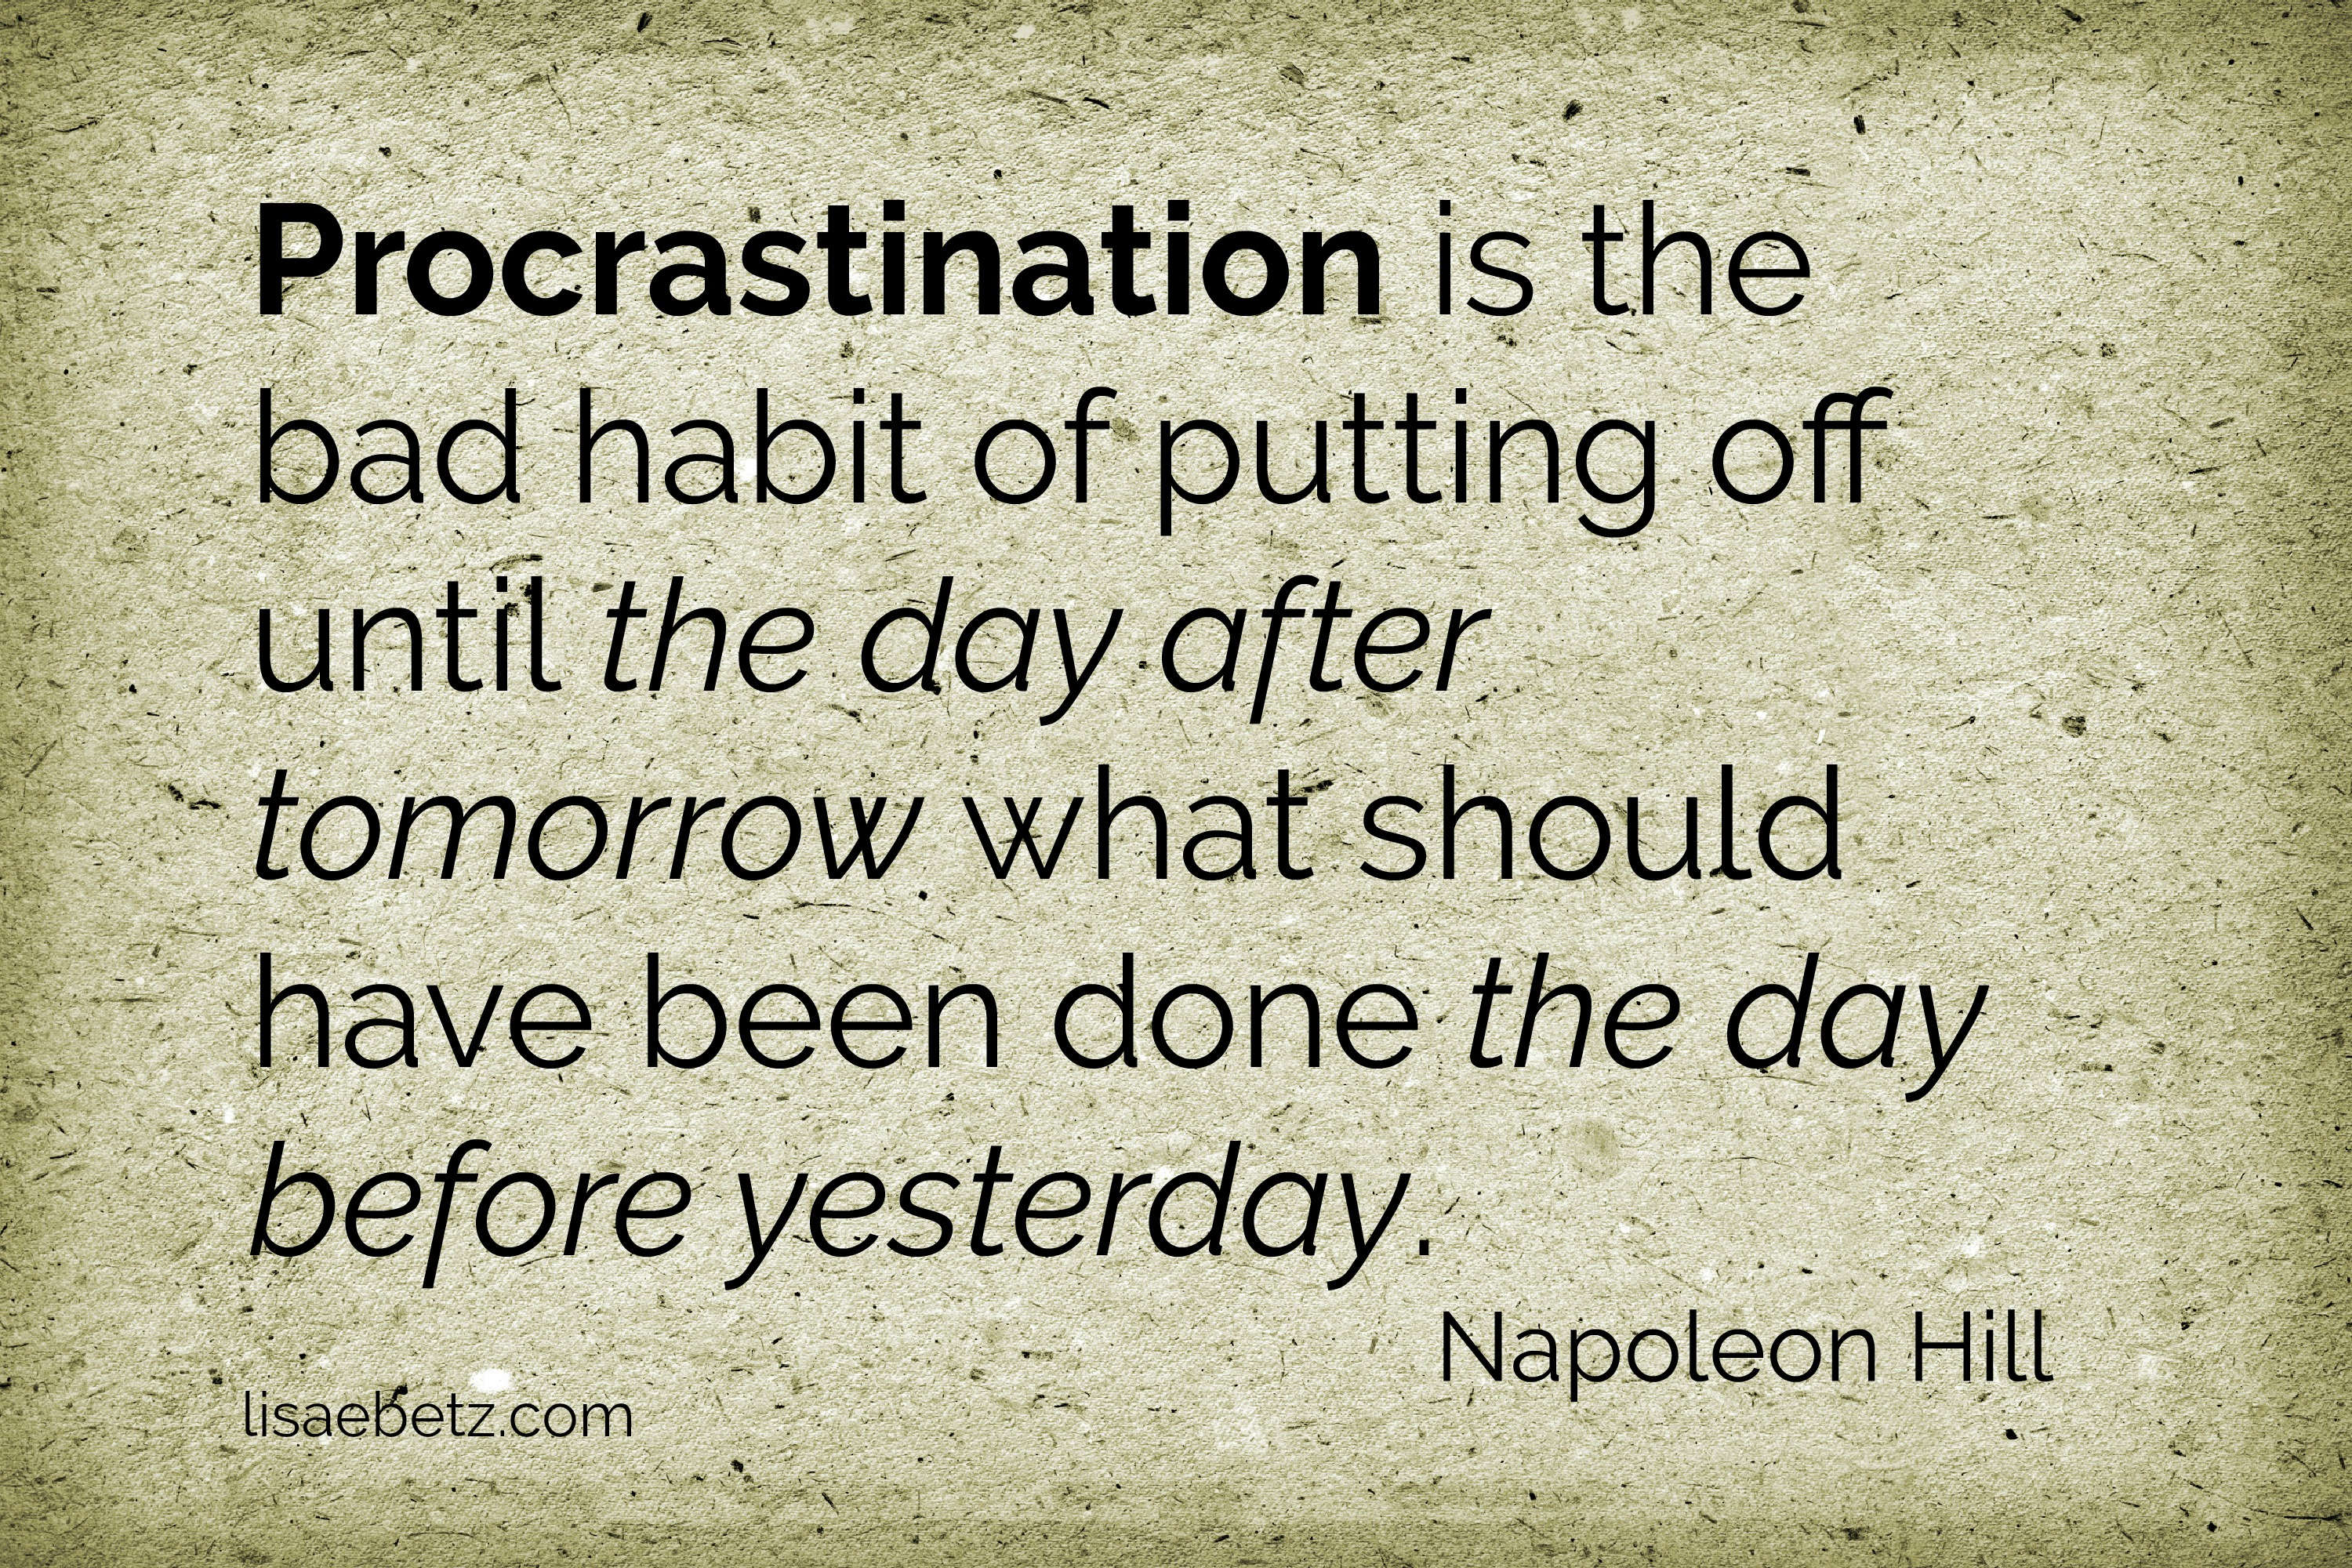 7 Tips to Overcome Procrastination